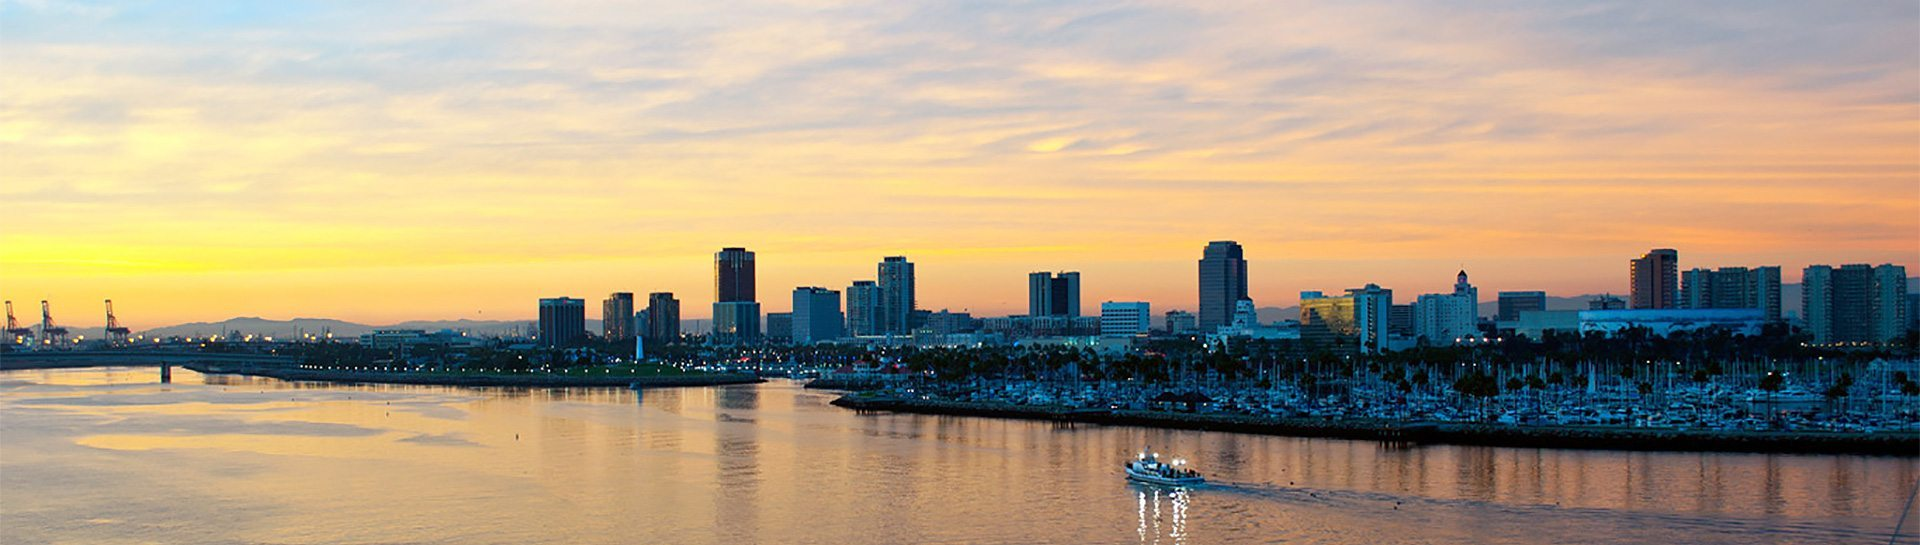 Long Beach, CA - panoramic